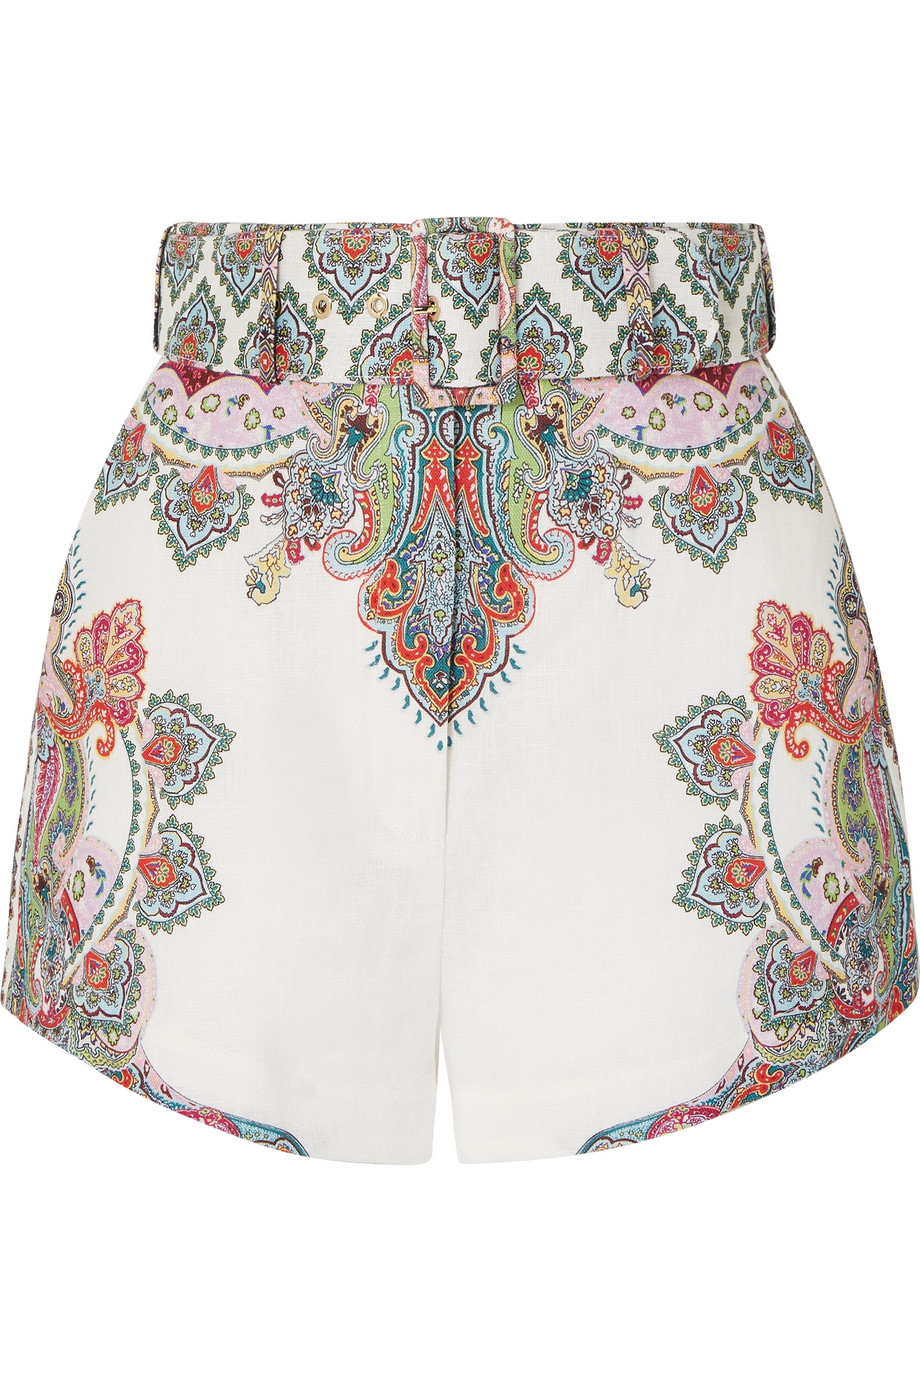 Ninety-six belted printed linen shorts £395